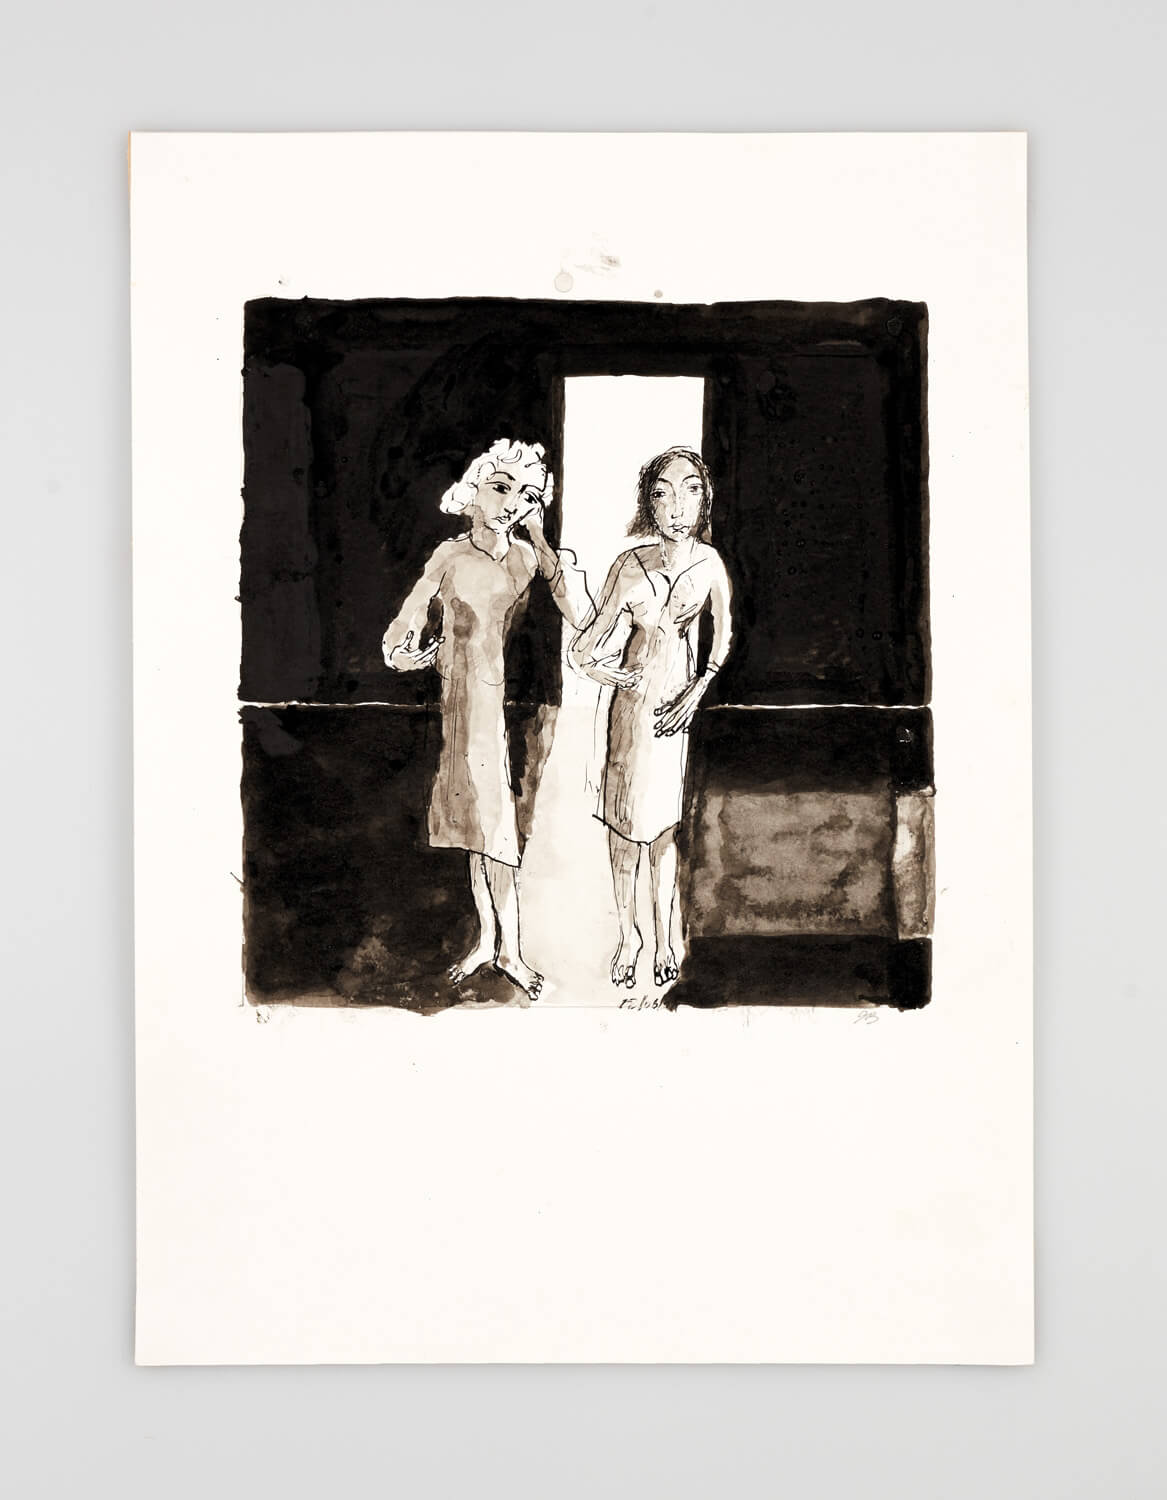 JB004 - Two Women Dressing - 2001 - 50 x 35 cm - Indian ink and wash on paper